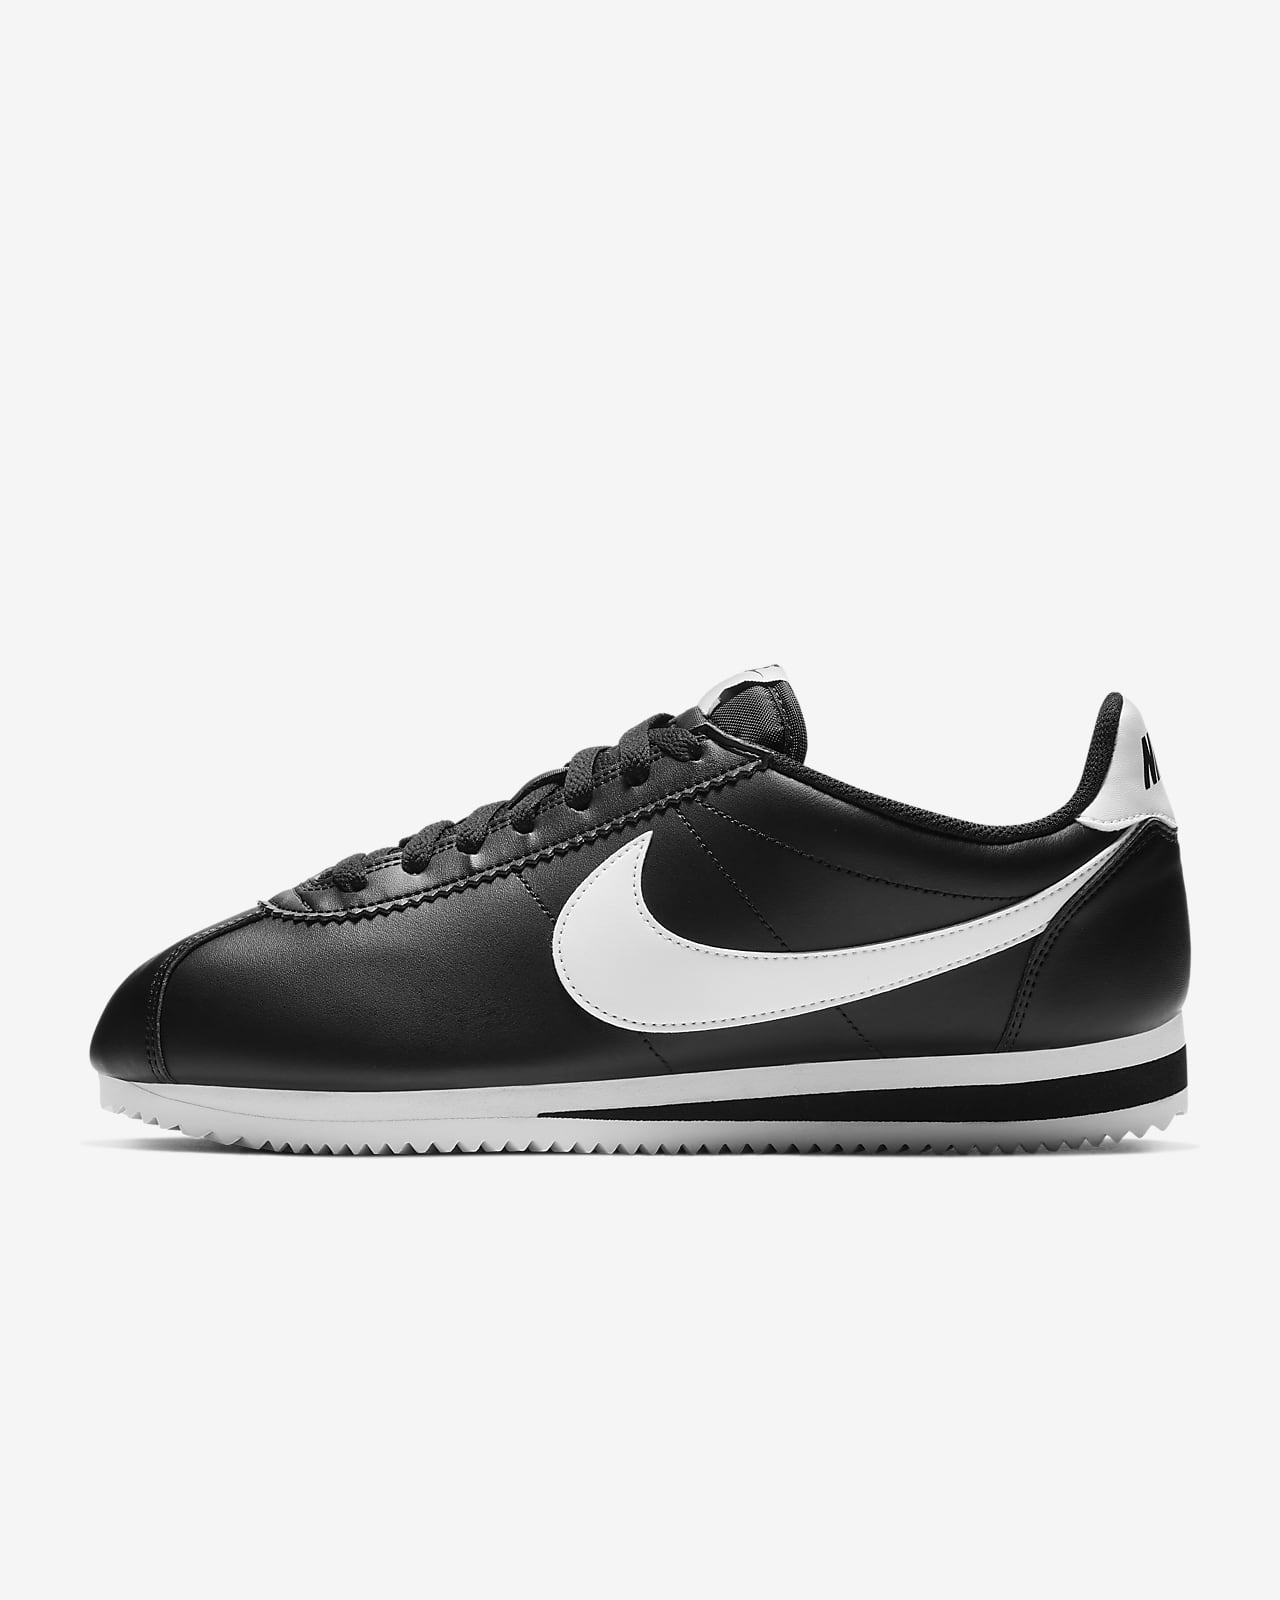 classic nikes sneakers